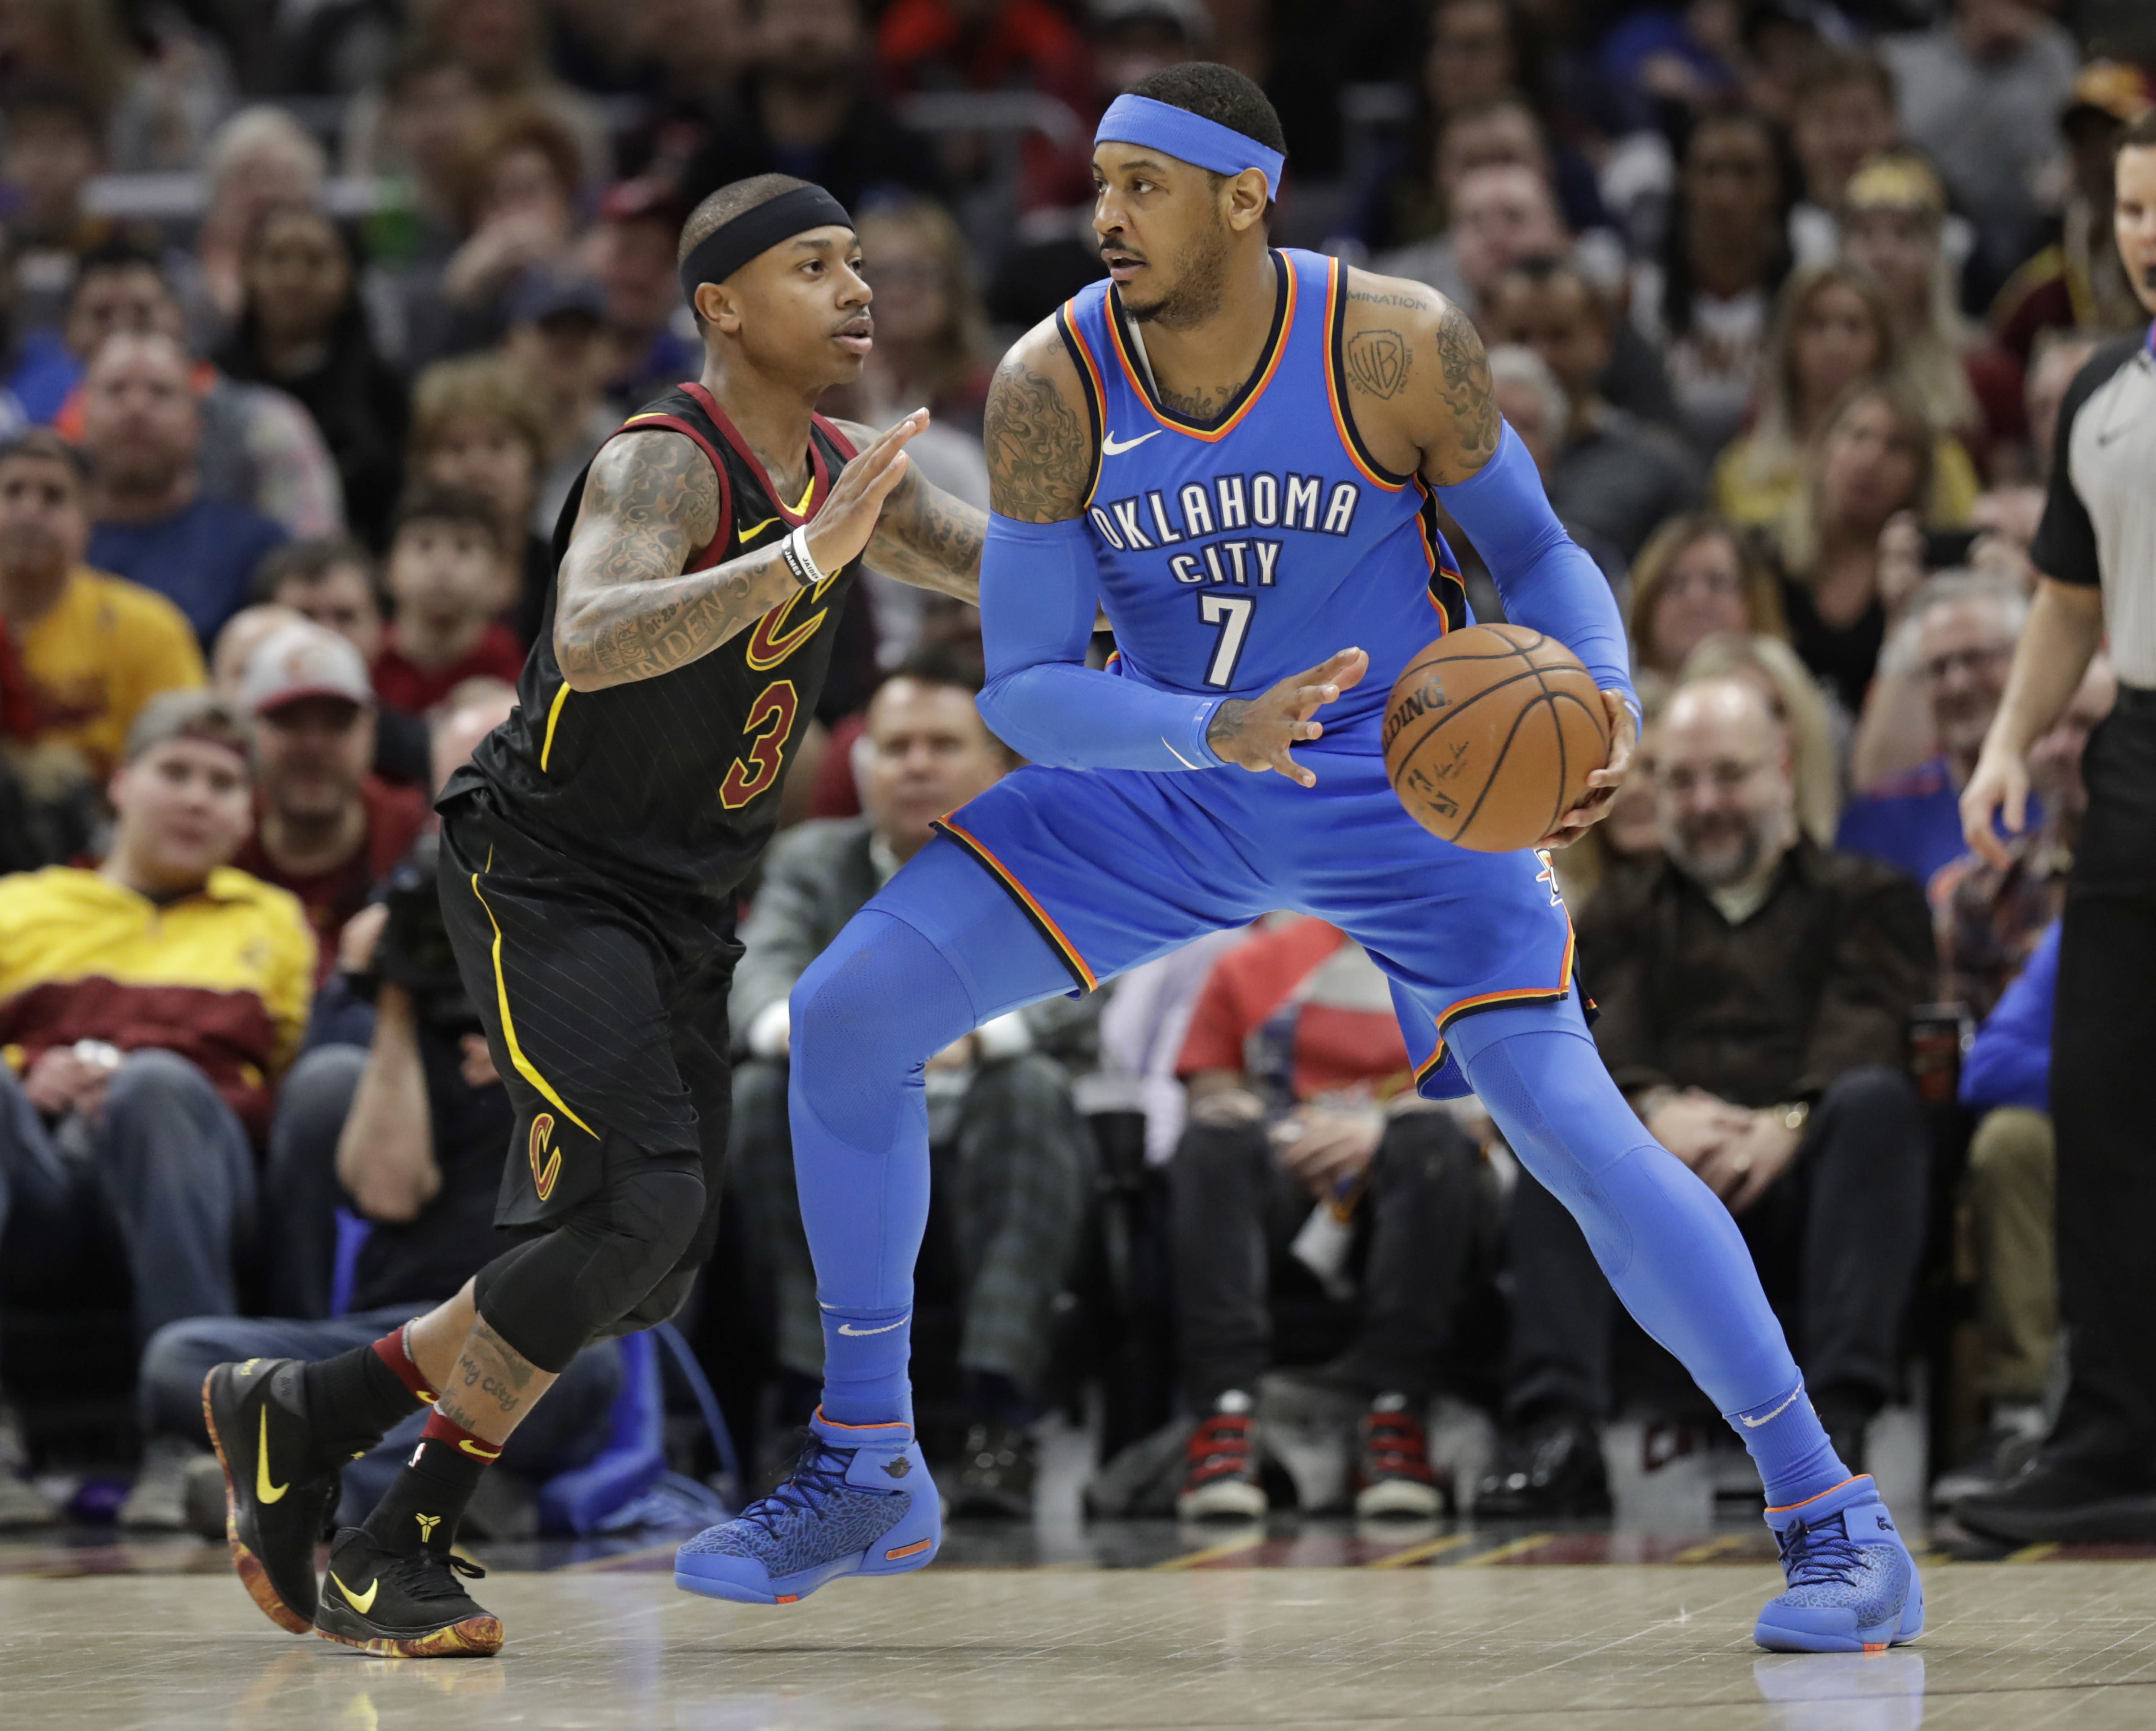 Carmelo Anthony becomes 21st player to score 25,000 points